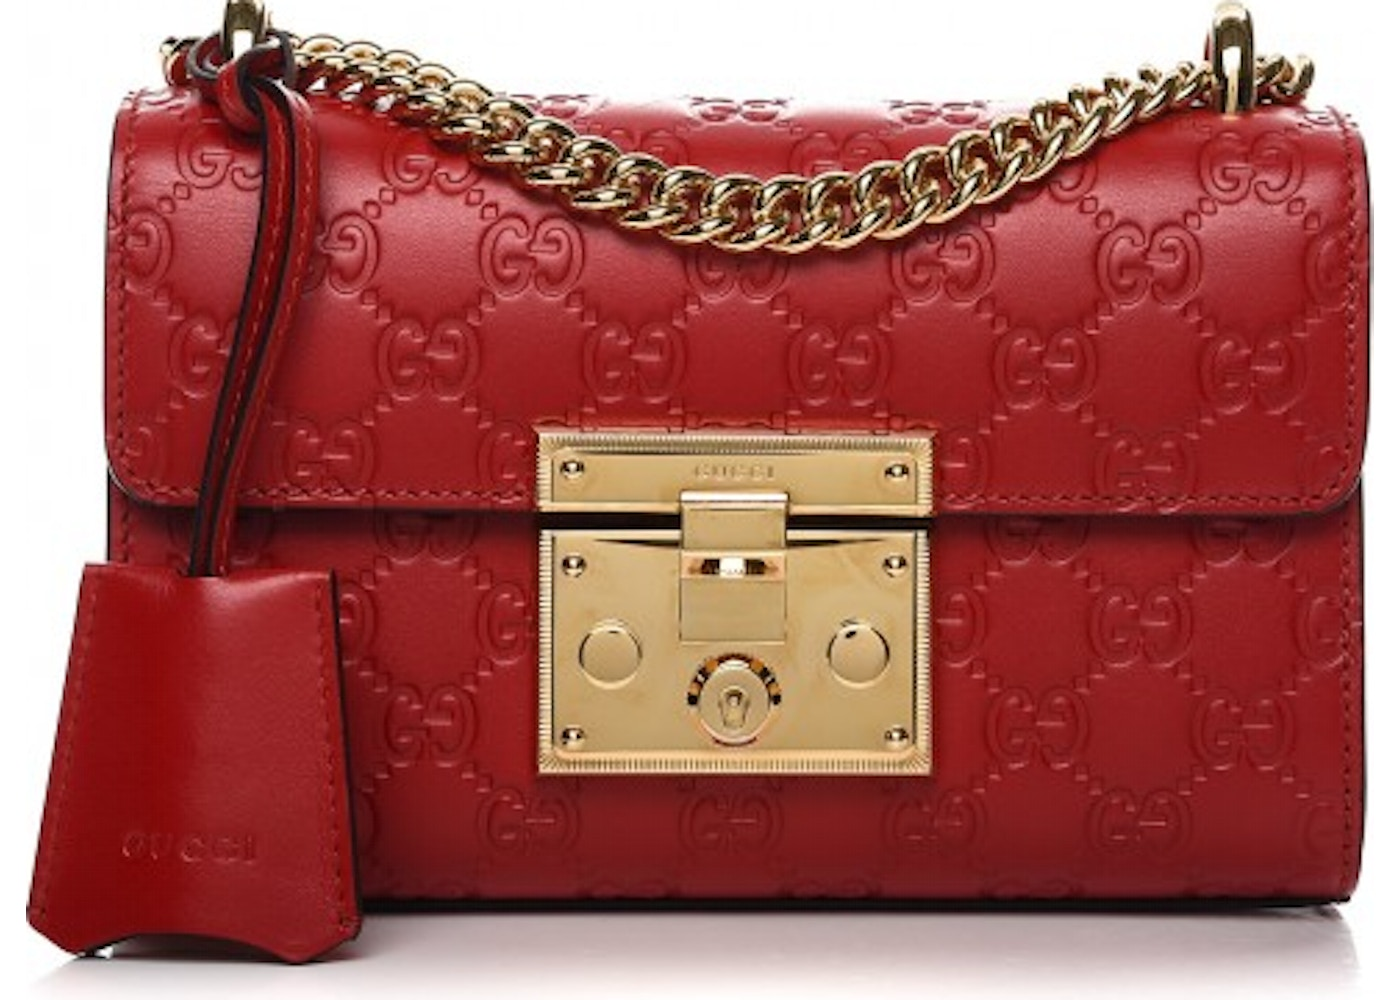 d87bda3e1a9c Gucci Padlock Shoulder Bag Monogram Guccissima Small Hibiscus Red. Monogram  Guccissima Small Hibiscus Red